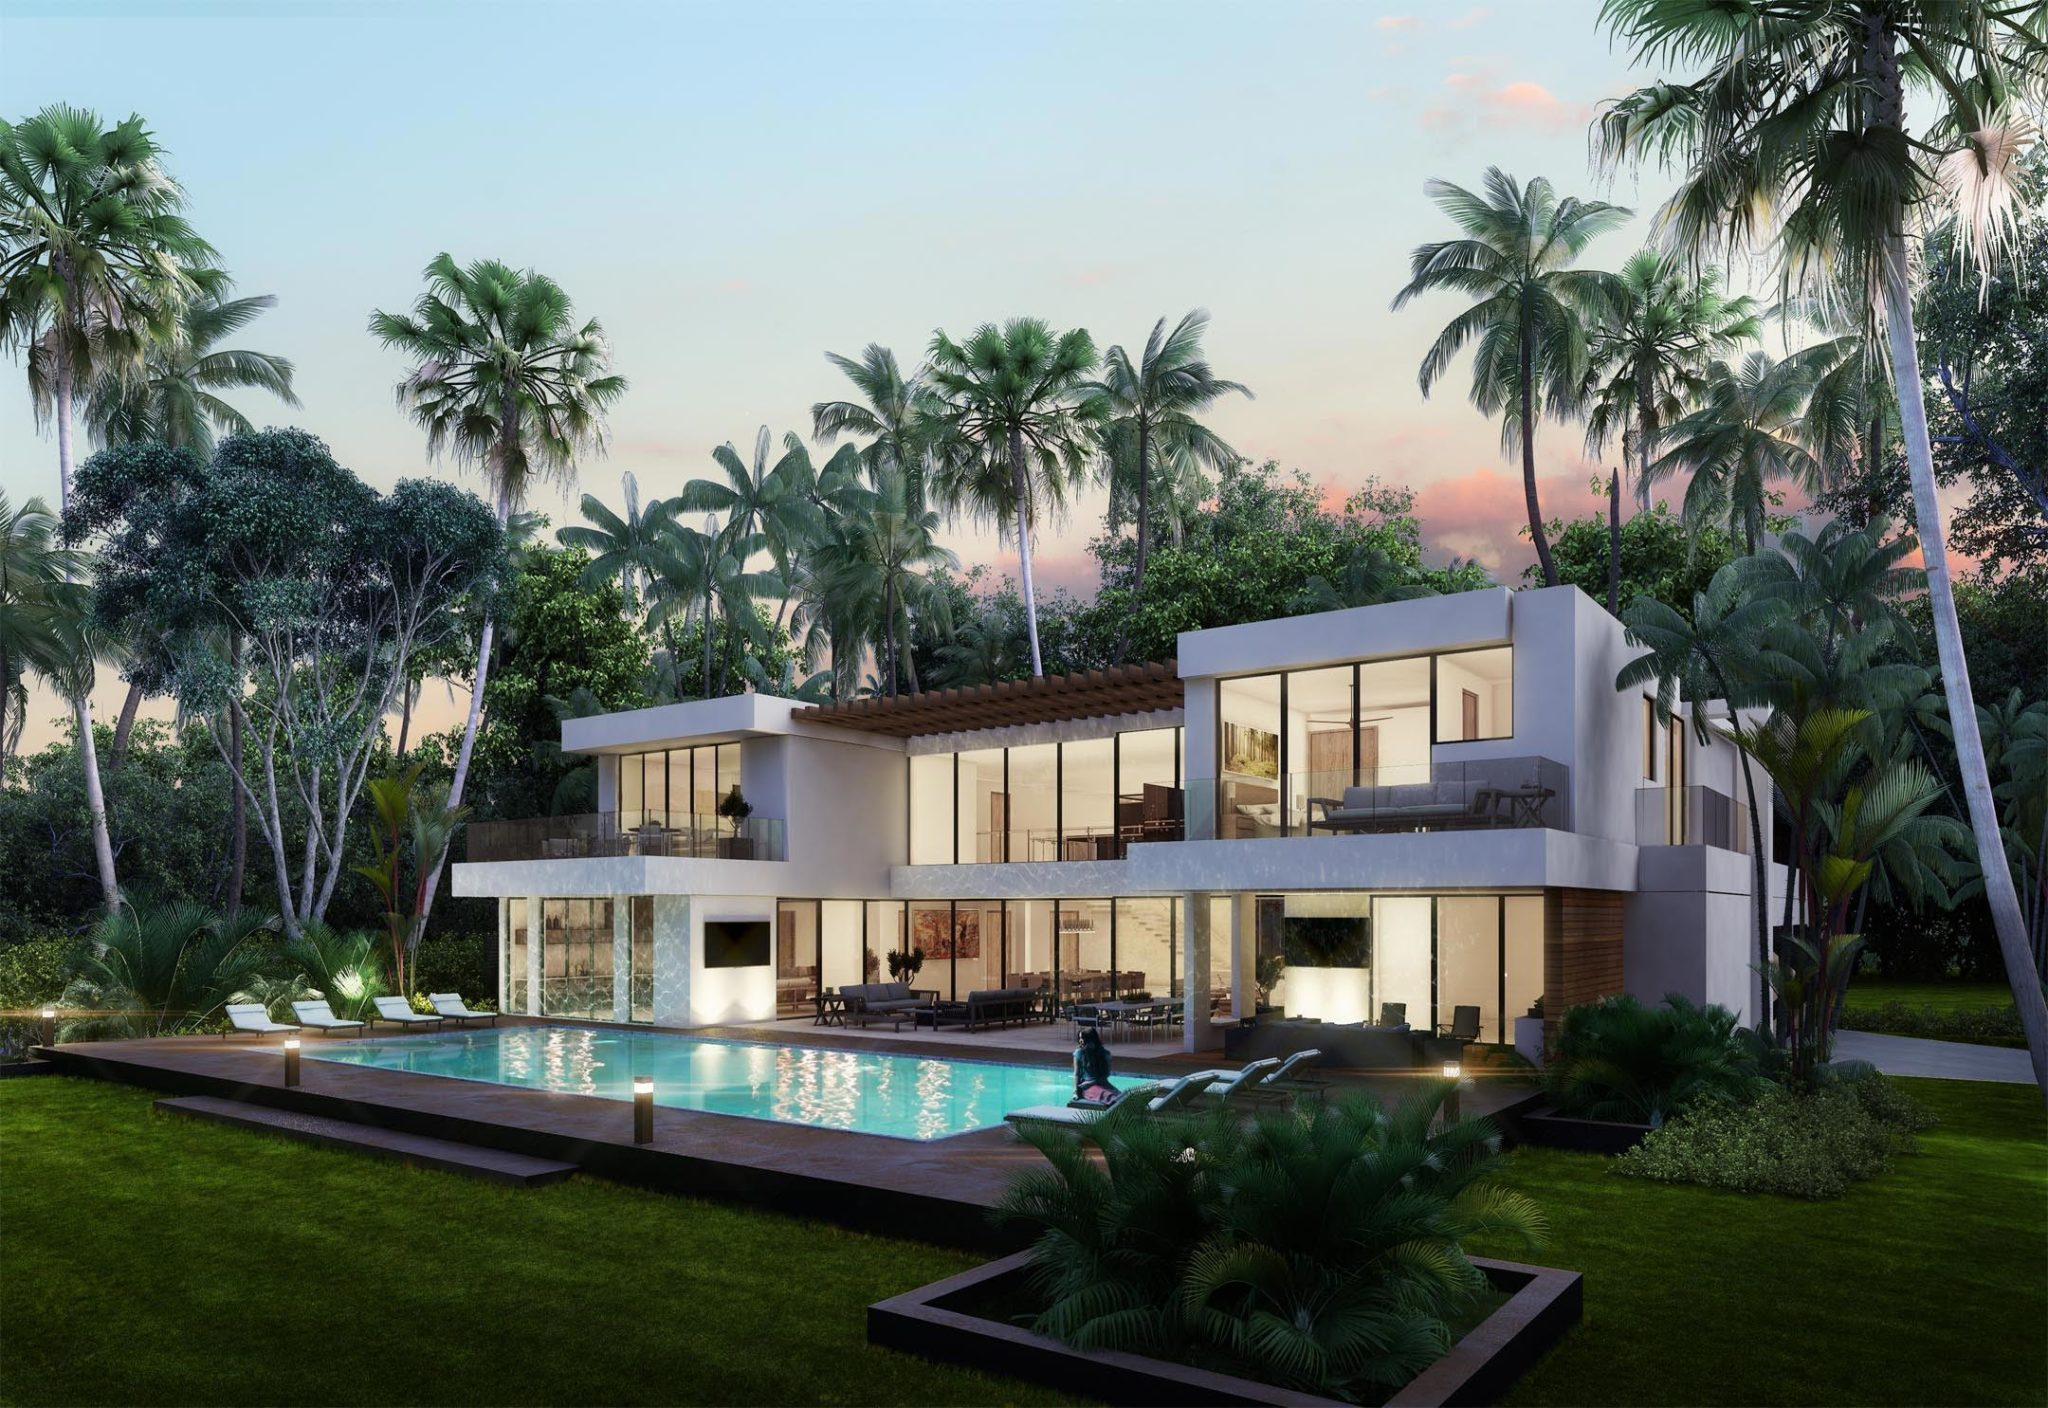 Best Custom Home Builders (Design-Build) in Miami (with Photos)